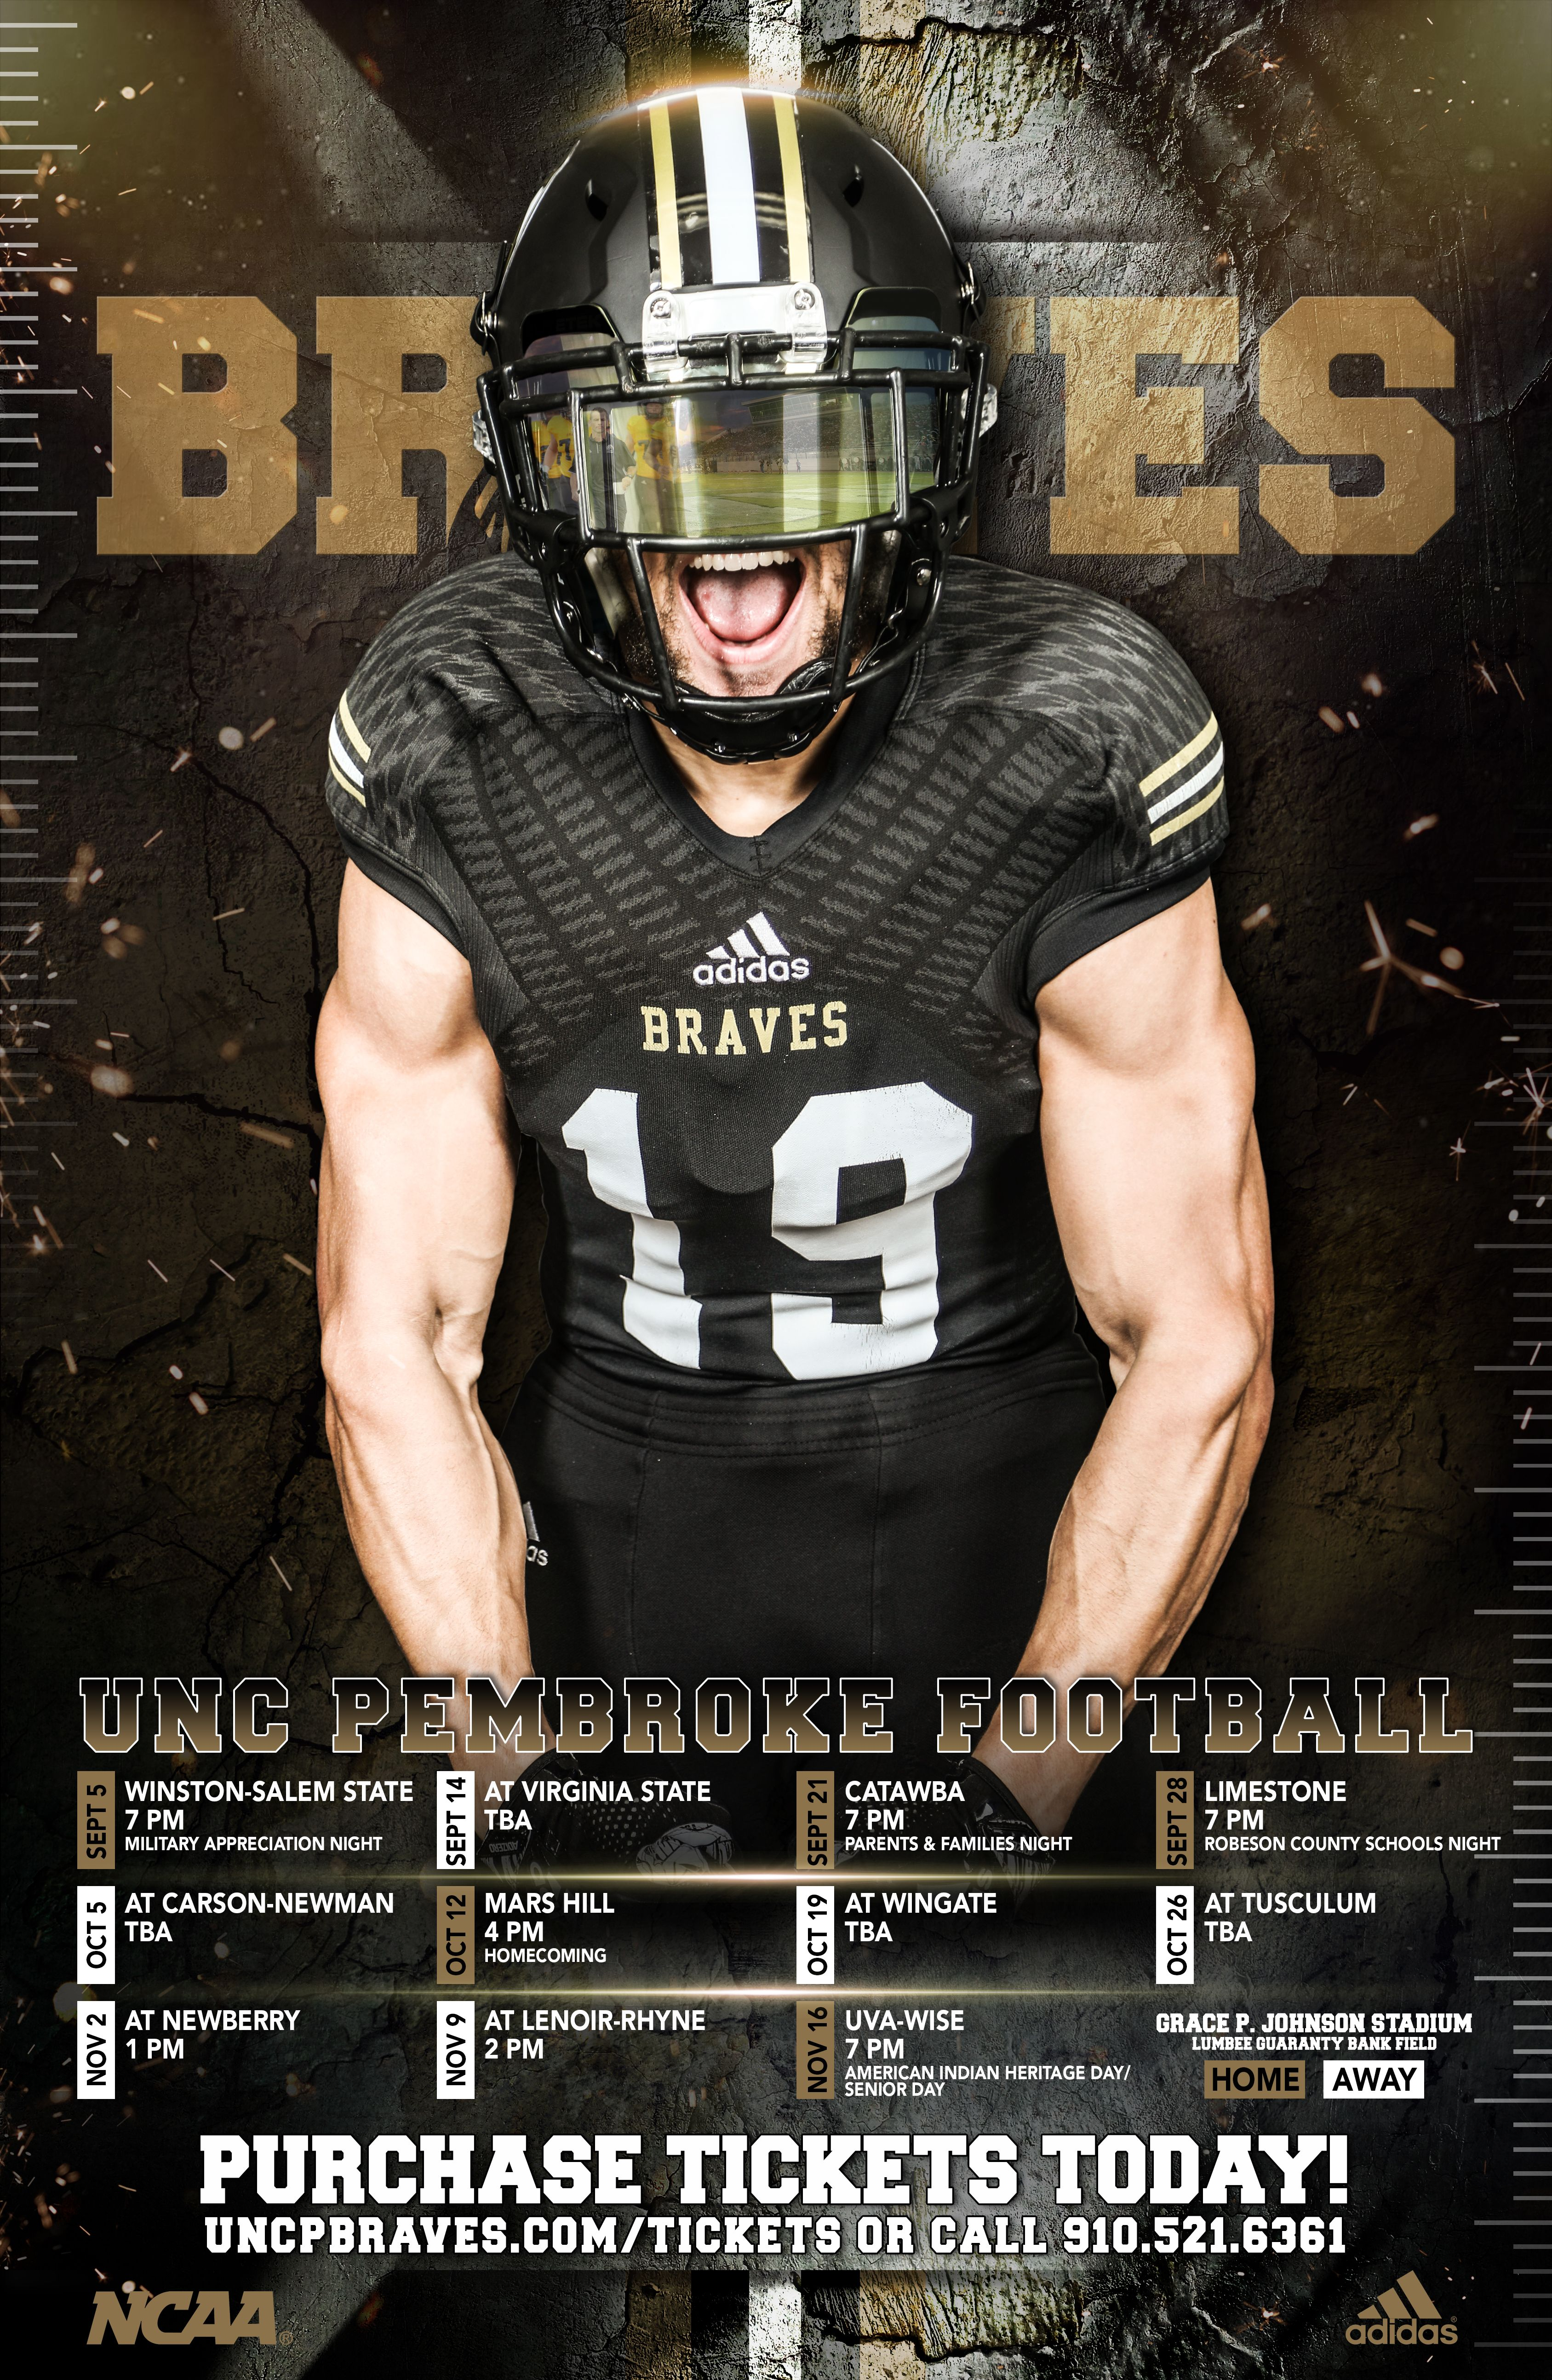 2019 Uncp Football Poster Unc Pembroke Football Poster Carson